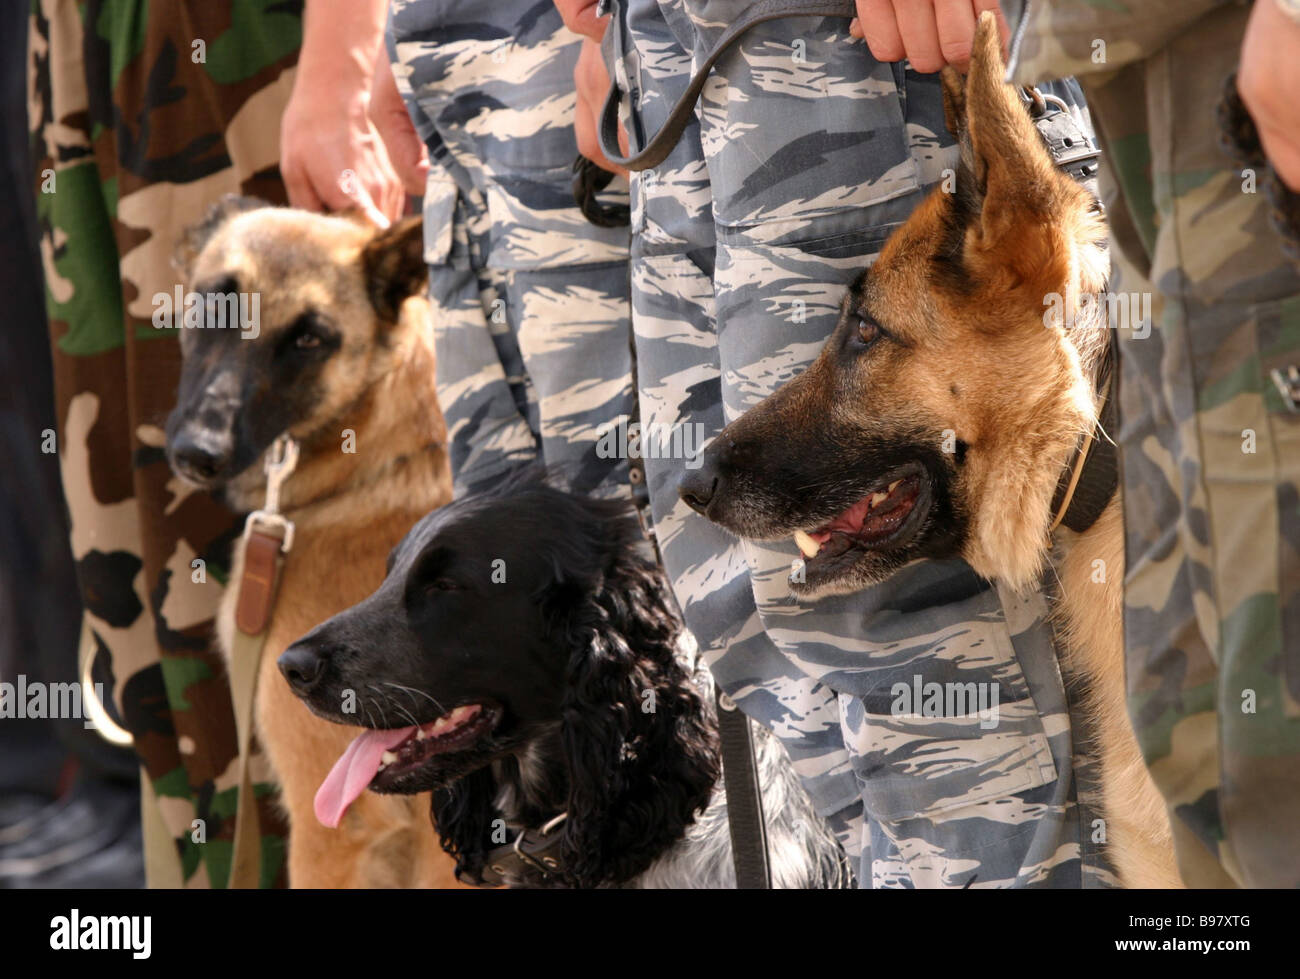 These trained dogs and their handlers serve in the Moscow railroad police riot force - Stock Image